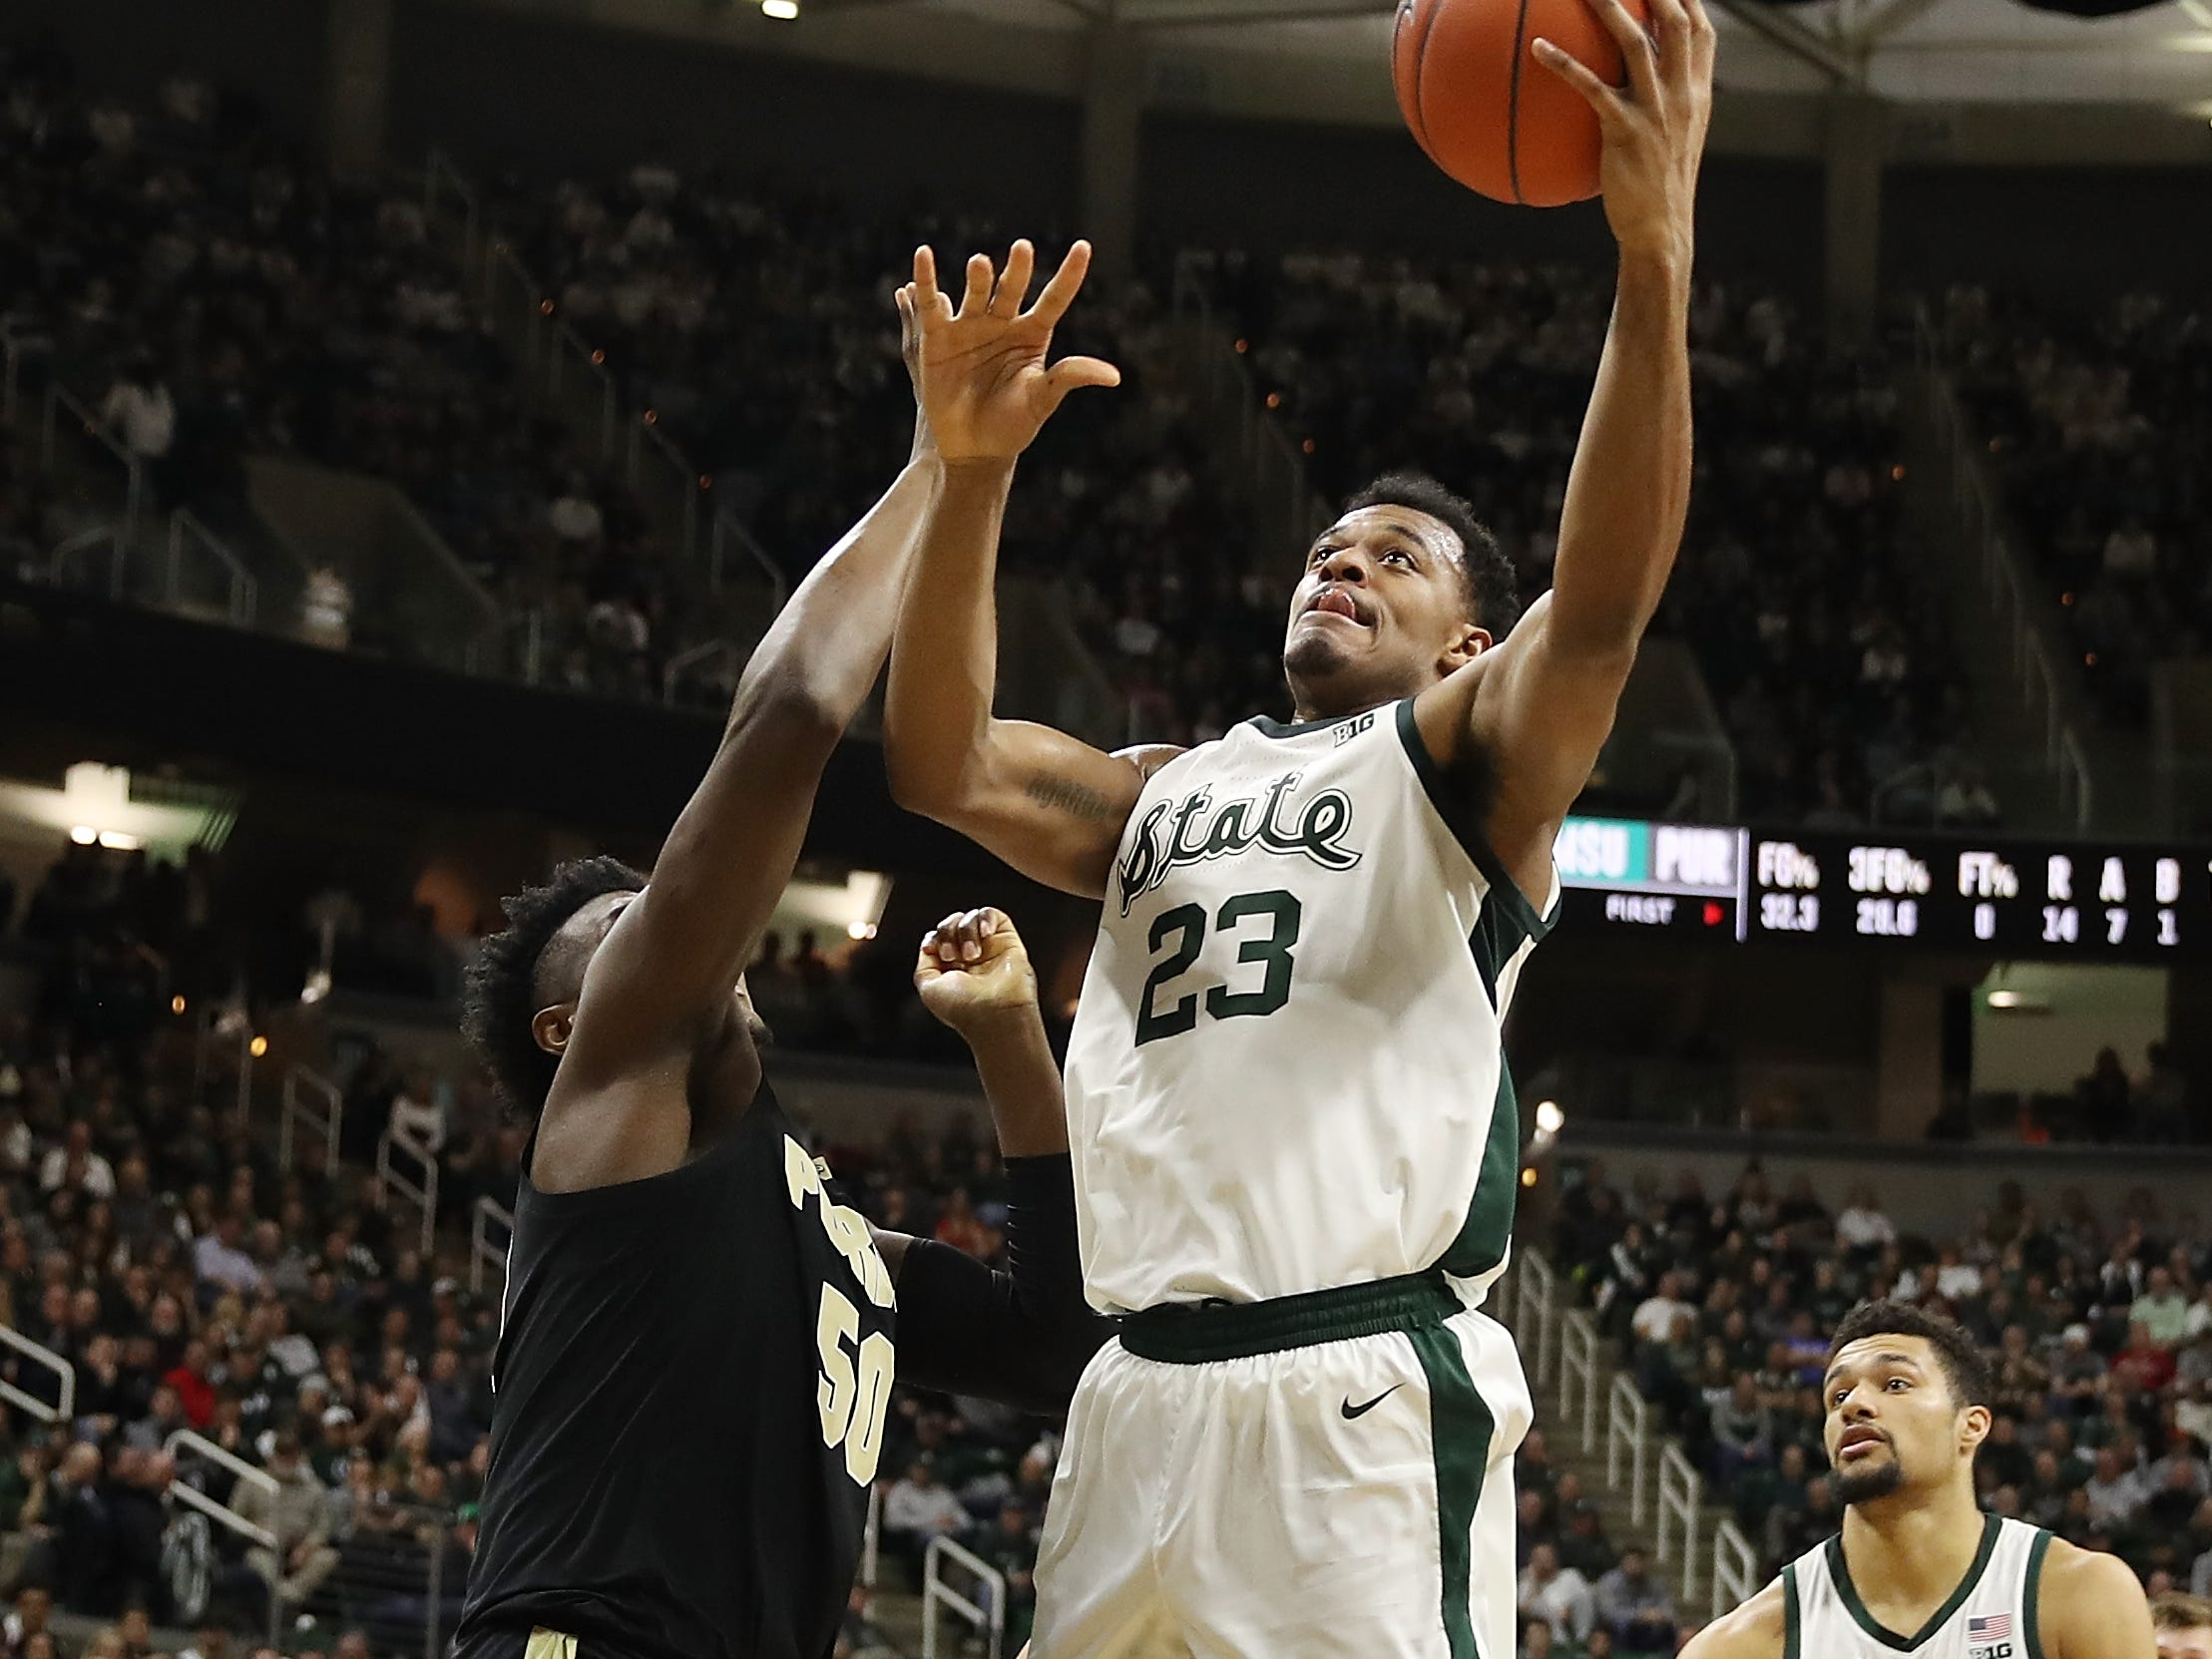 Xavier Tillman #23 of the Michigan State Spartans gets a shot off next to Trevion Williams #50 of the Purdue Boilermakers during the first half at Breslin Center on January 08, 2019 in East Lansing, Michigan.